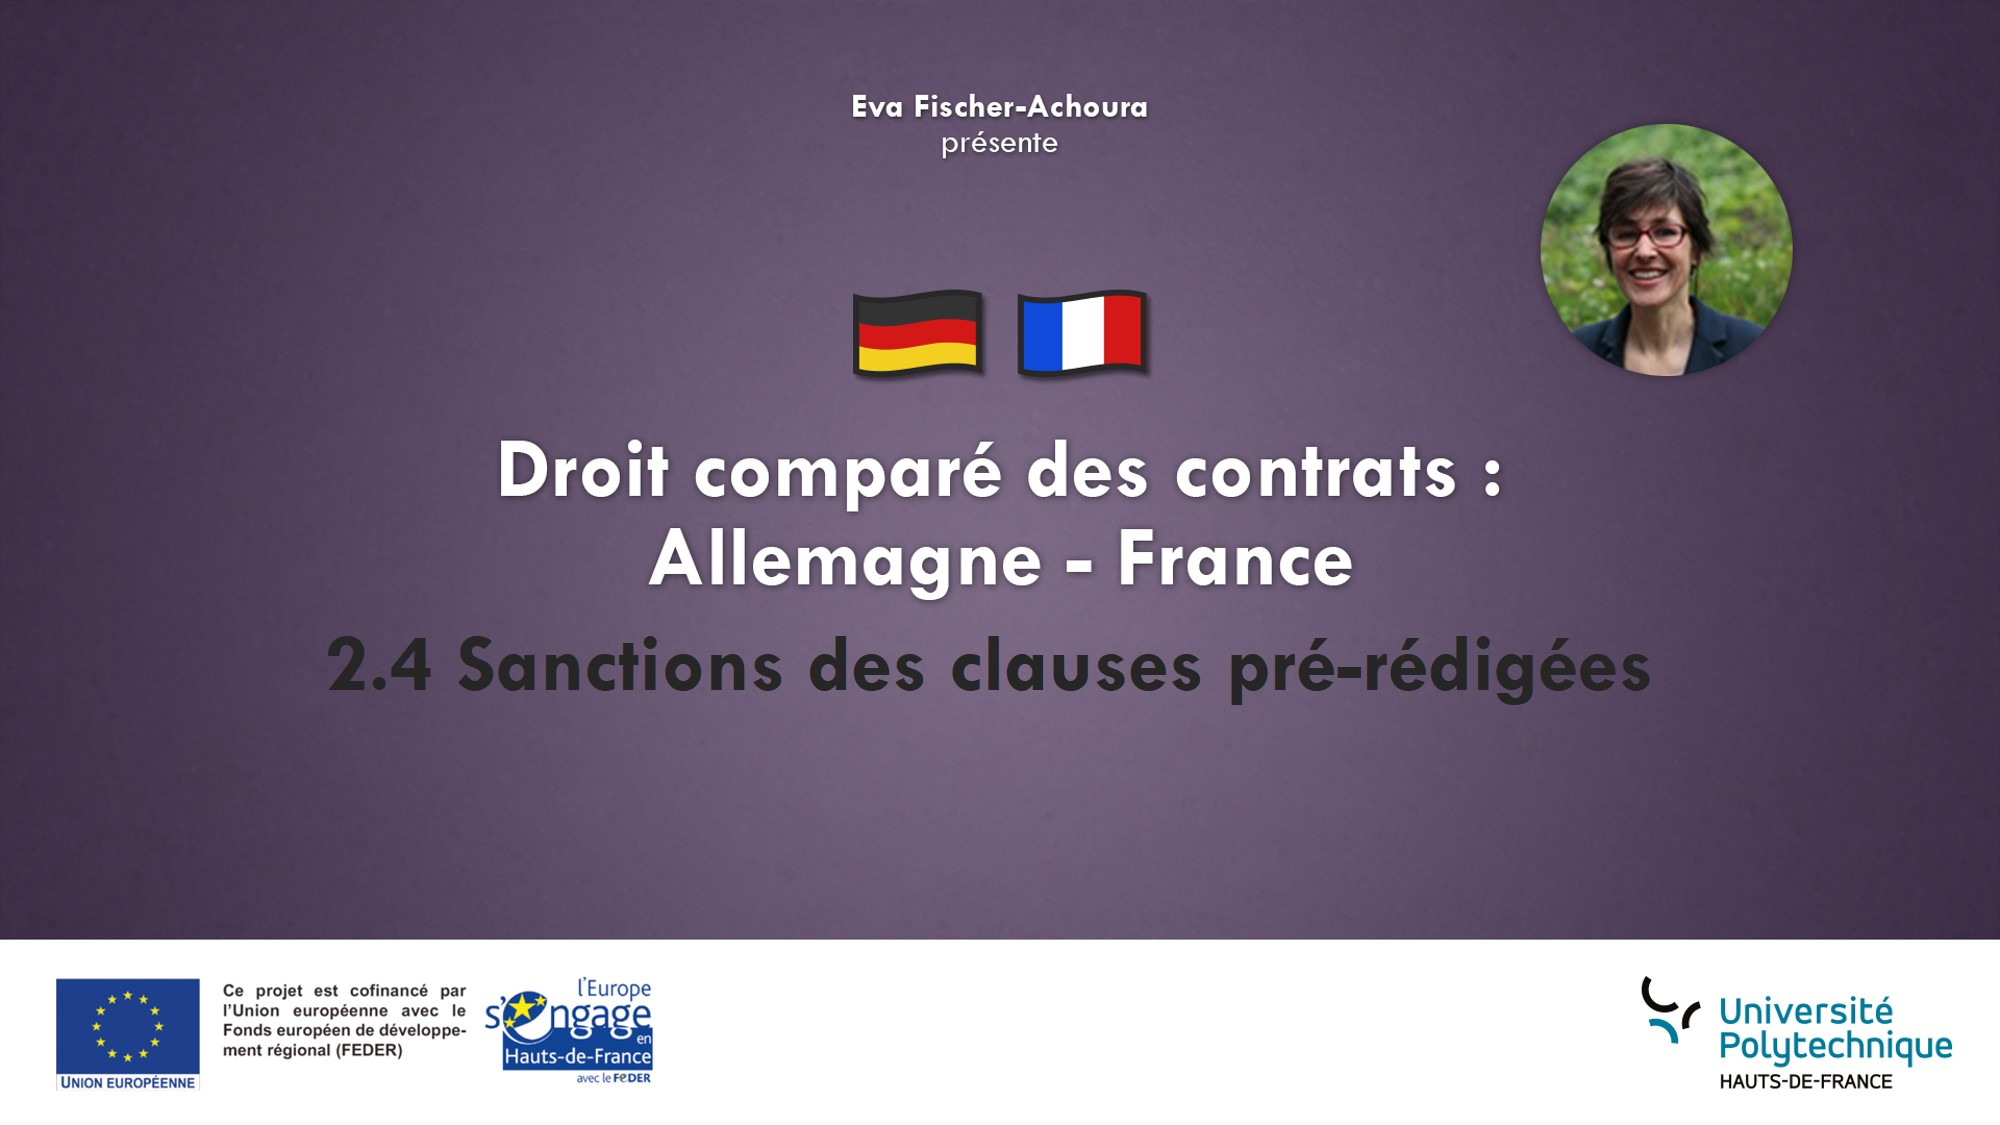 2.4 Sanctions des clauses prérédigées abusives